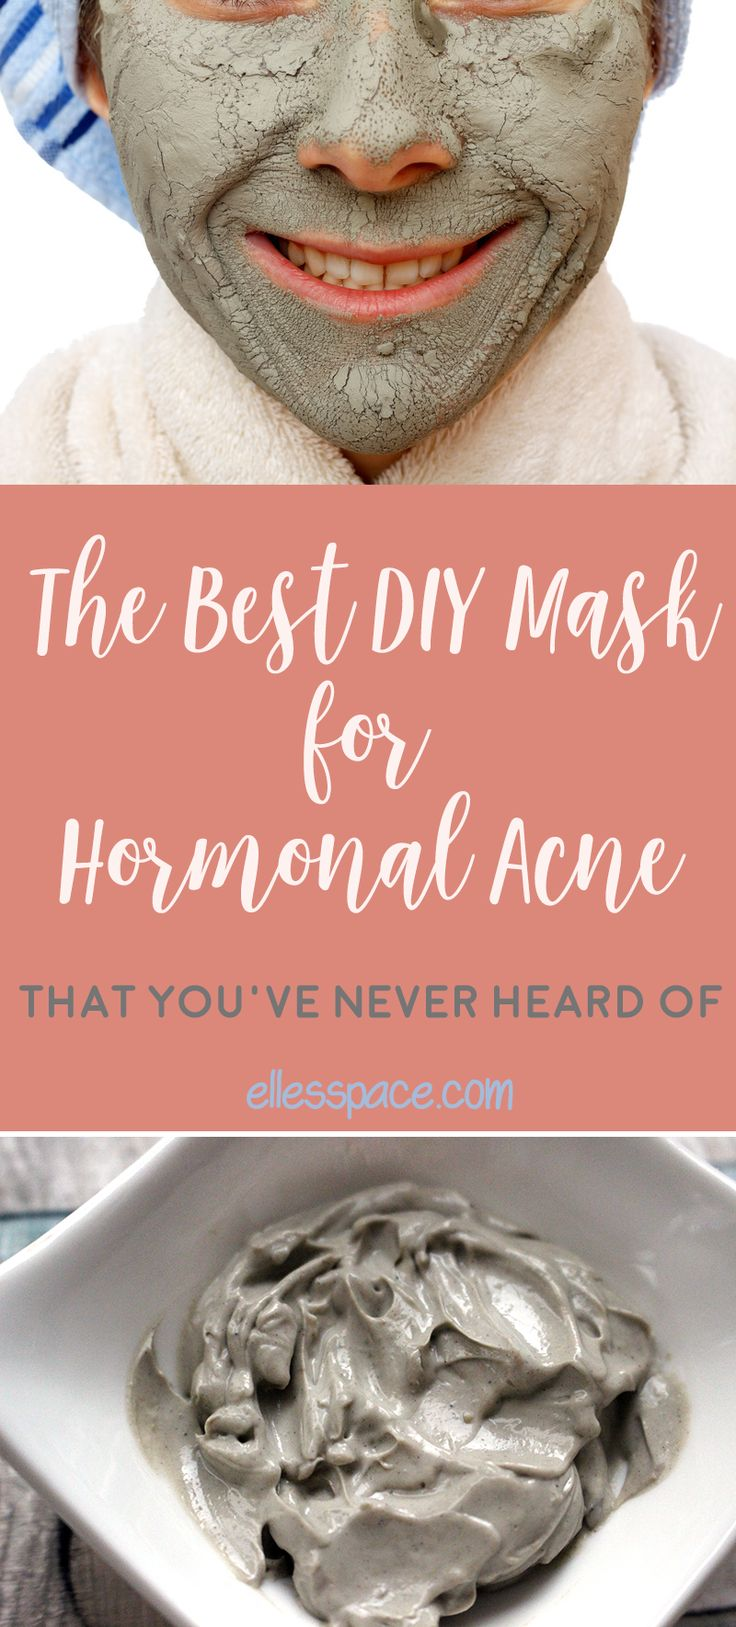 DIY Mask for Hormonal Acne  Get rid of stubborn acne with this powerful drawing mask. Clay, tea tree oil and a secret ingredient are all you need for flawless skin.